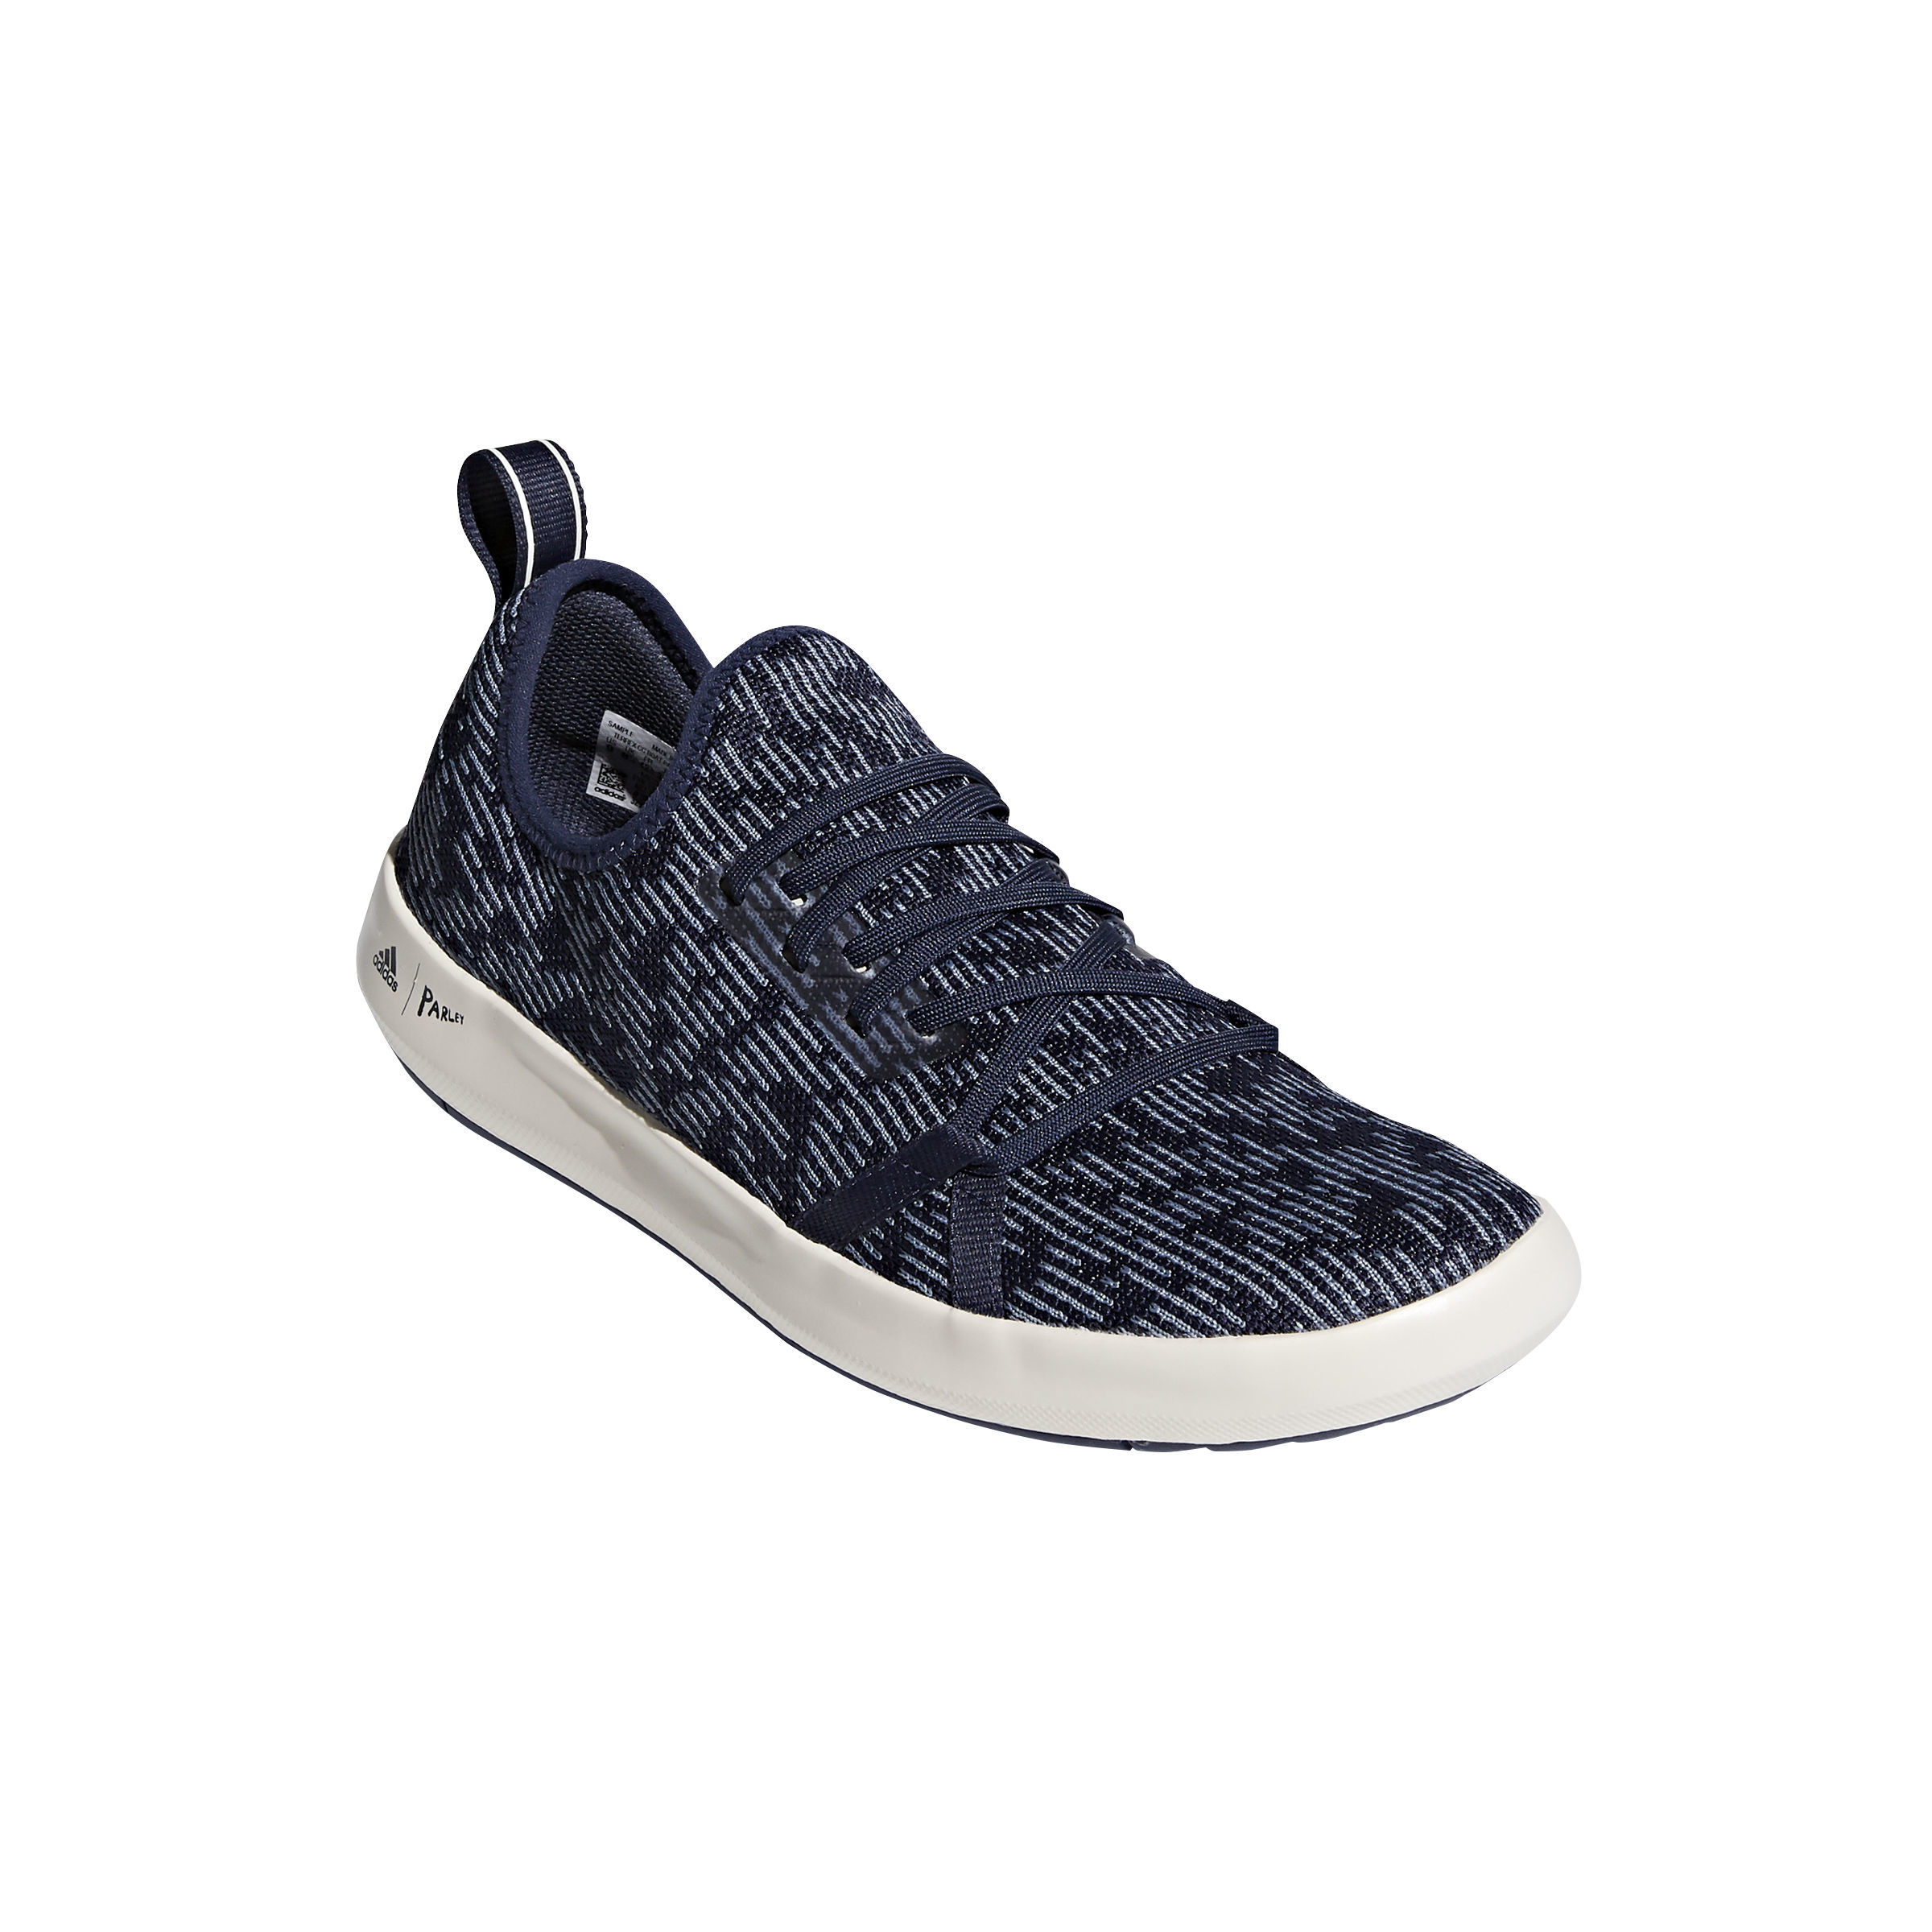 Adidas Outdoor Terrex ClimaCool Boat Parley Shoes Men's